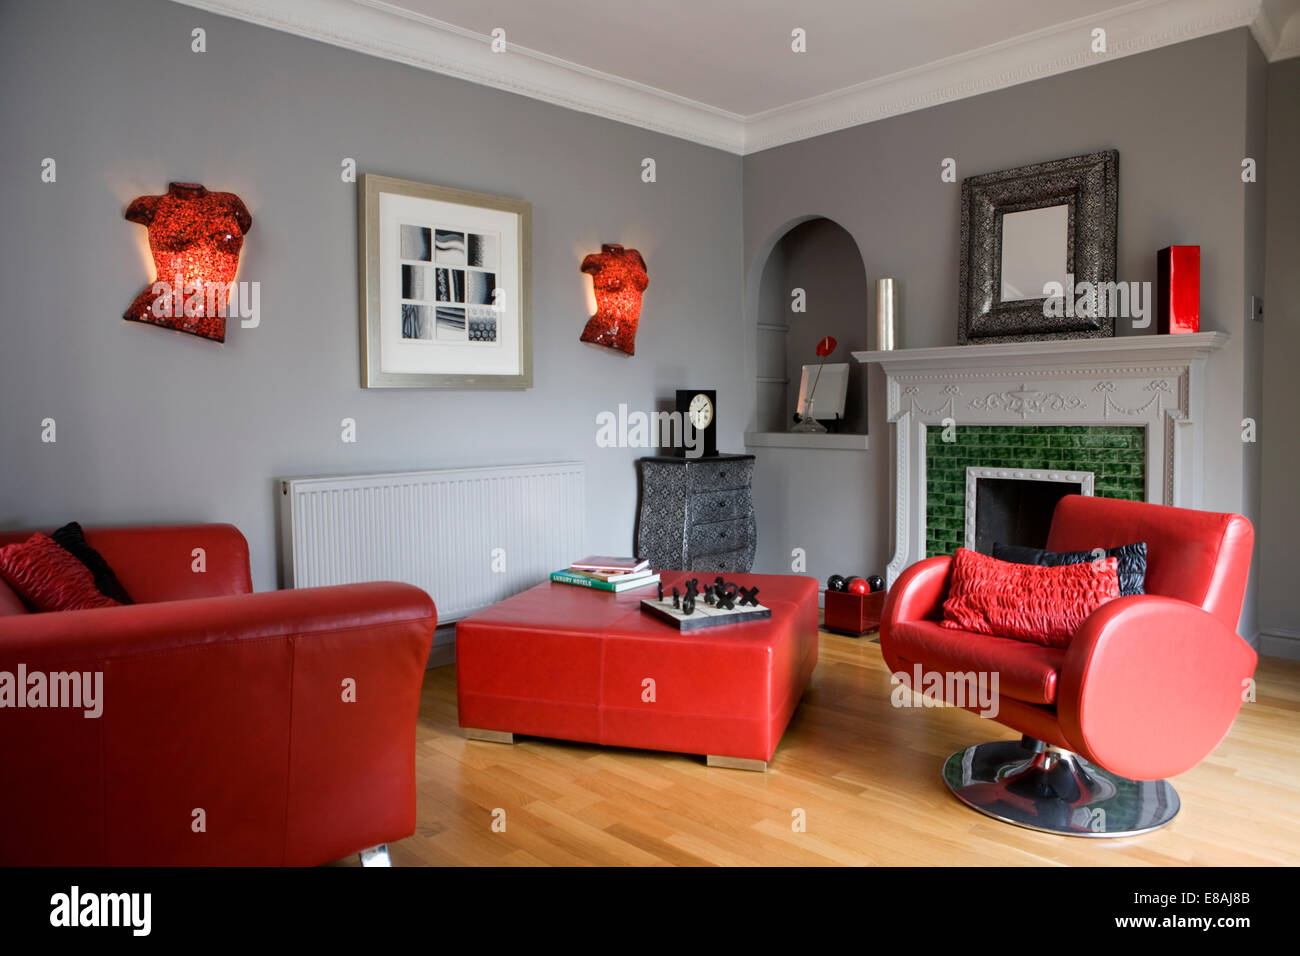 Surprising Red Leather Sofa And Swivel Armchair With Red Leather Dailytribune Chair Design For Home Dailytribuneorg